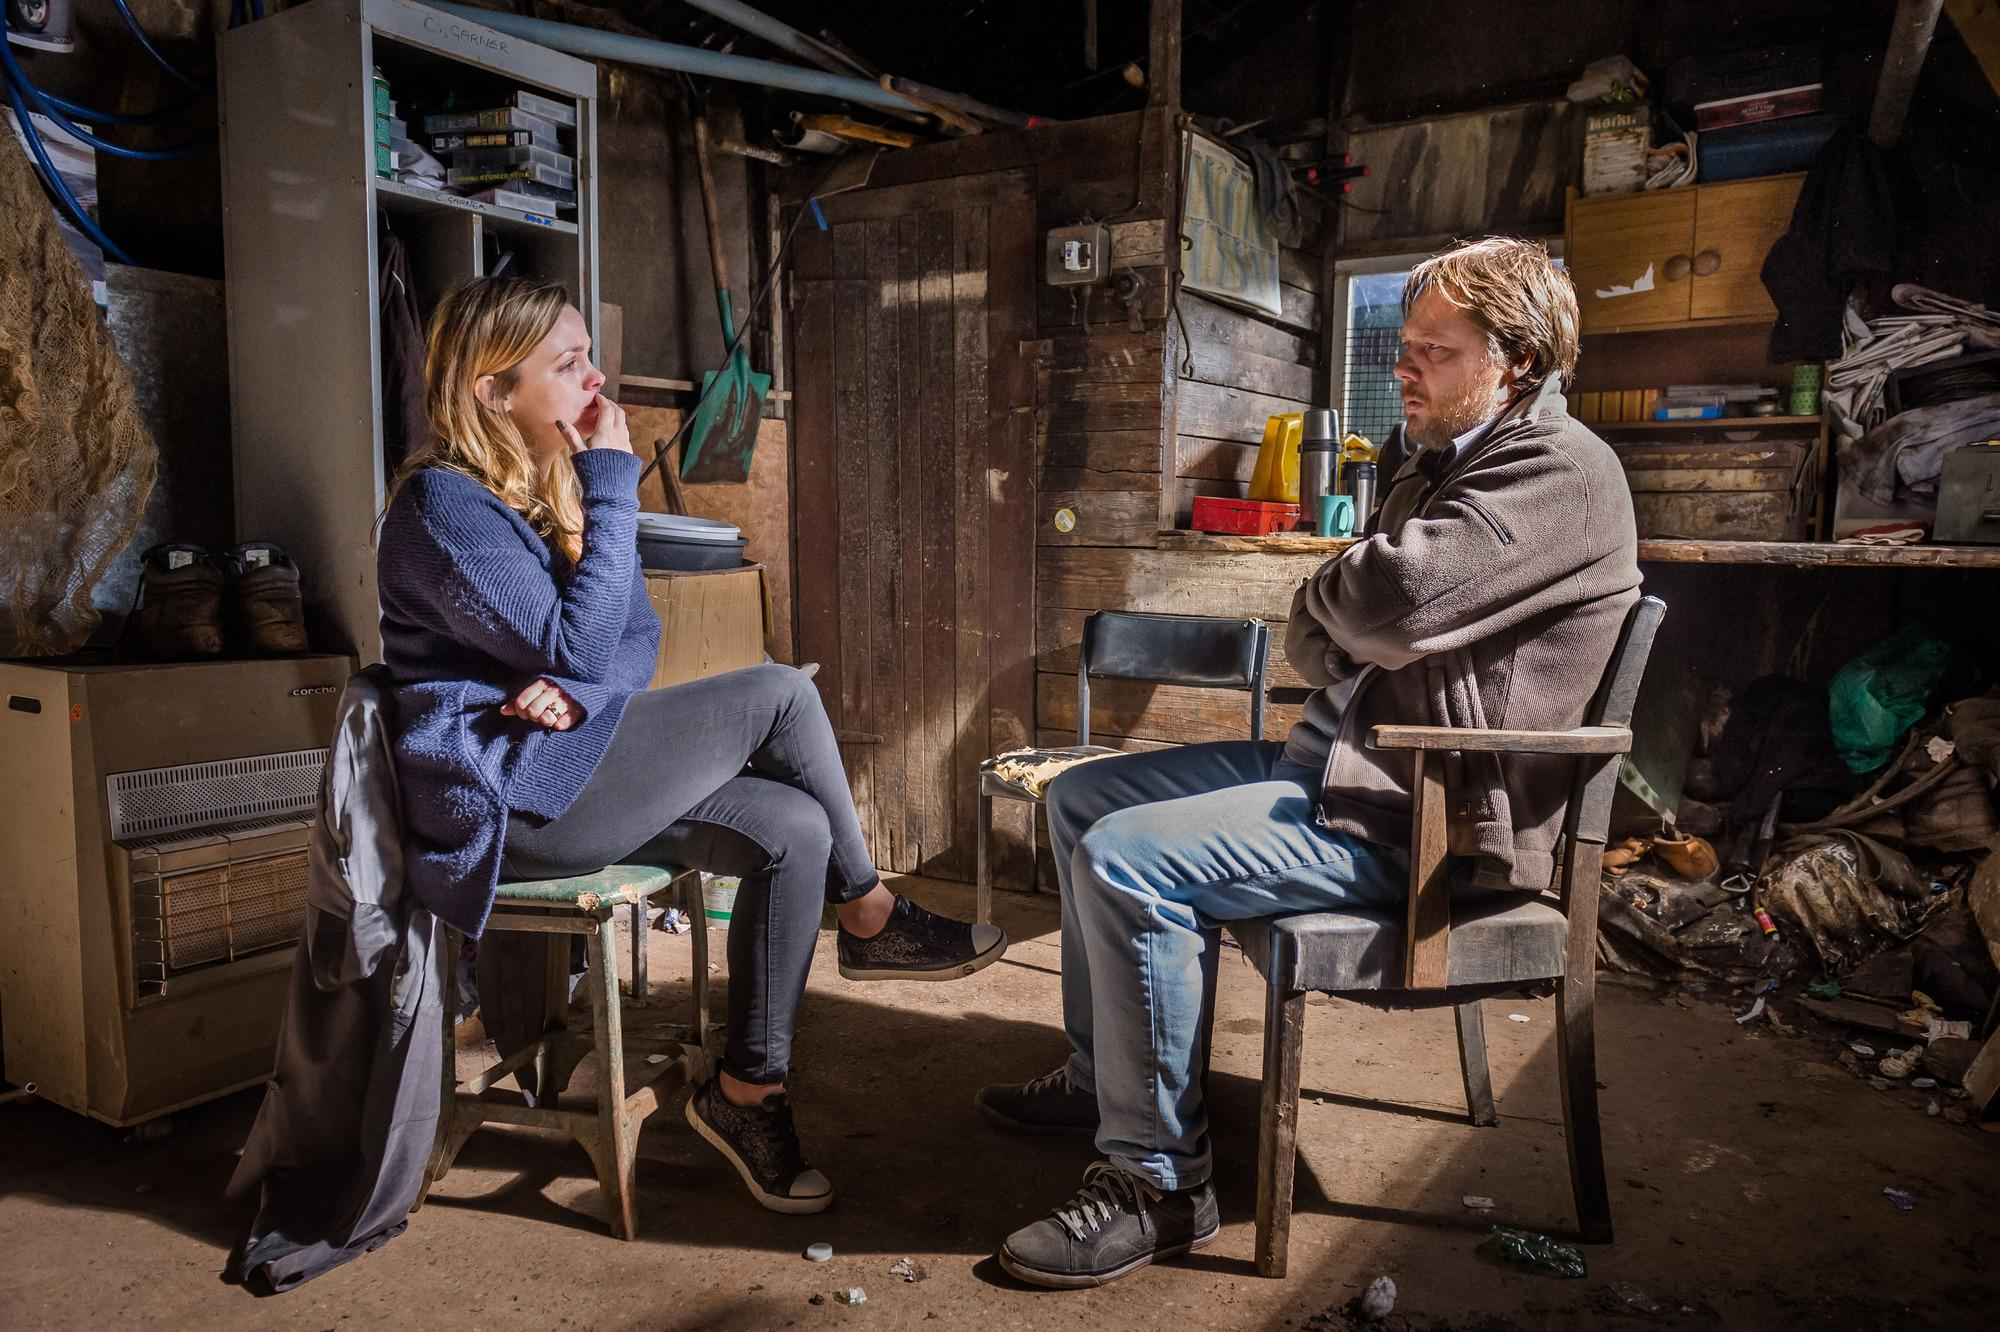 TV review: Jo Joyner gives emotional performance in Ordinary Lies finale which leaves door open for second series